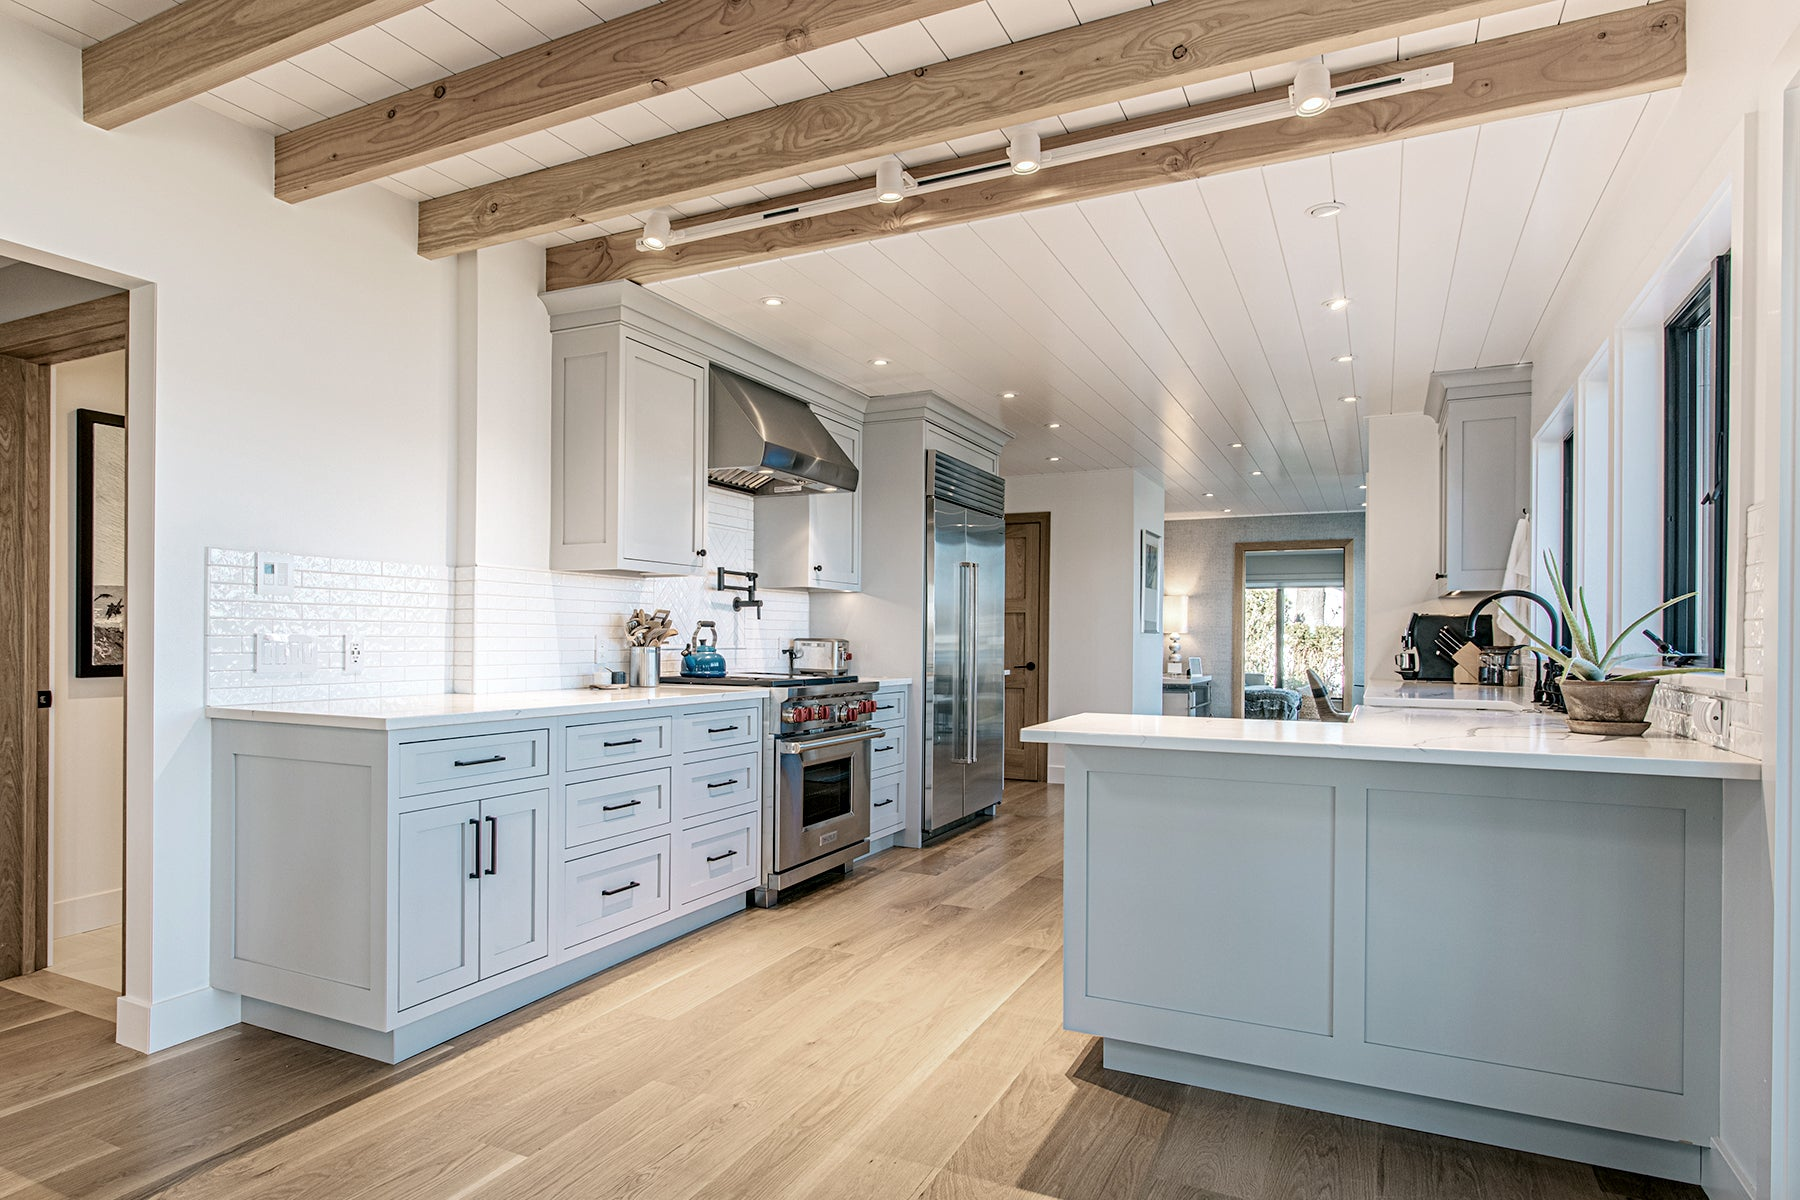 Ocean Blu Designs - Kitchen - Modern Coastal and Transitional Designs for New York, Long Island, Connecticut, Hamptons, and Florida. Interior Designers